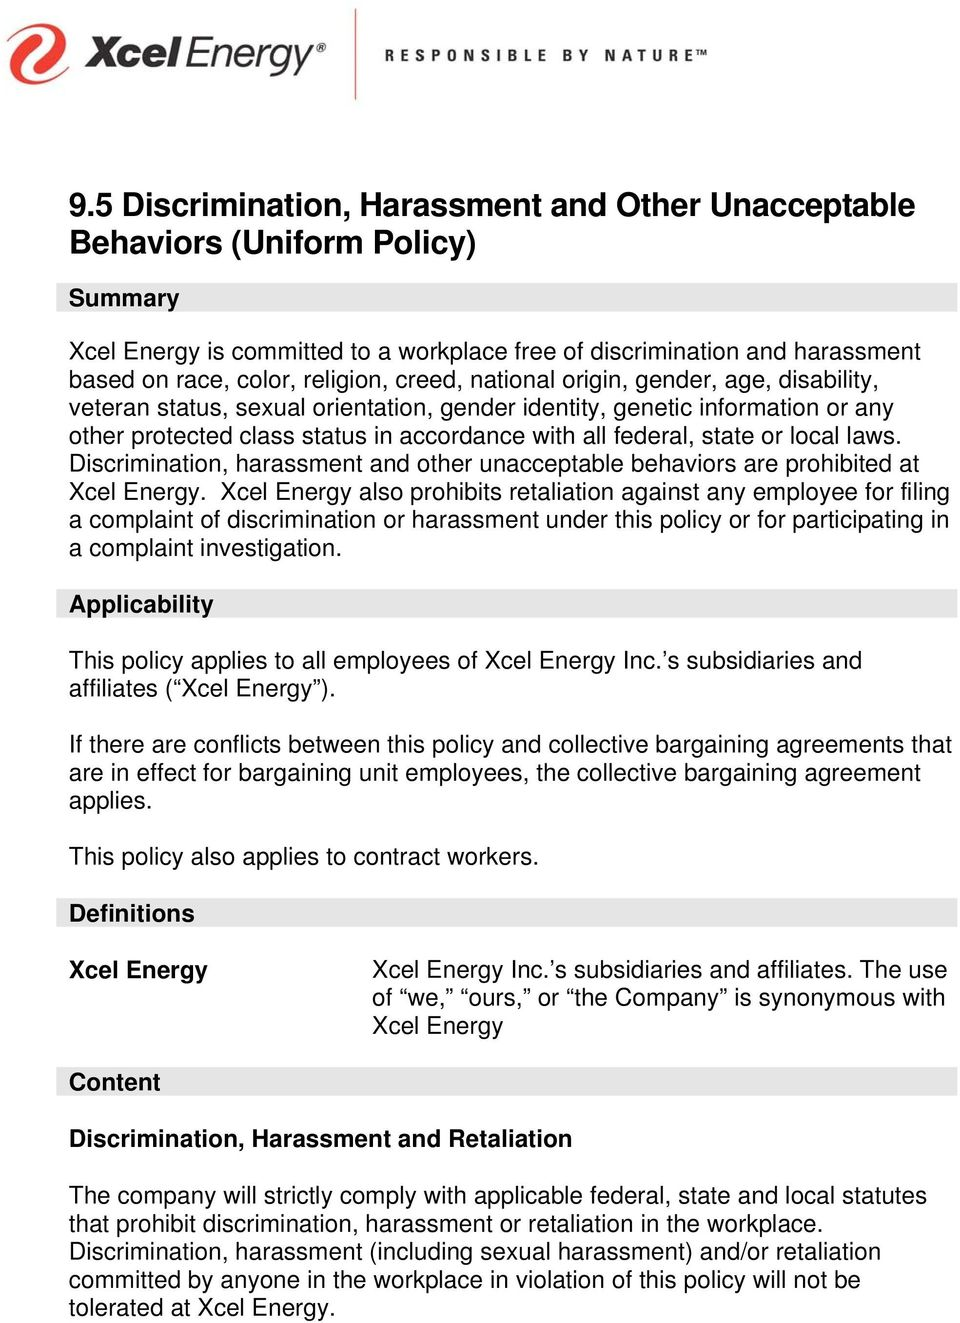 local laws. Discrimination, harassment and other unacceptable behaviors are prohibited at Xcel Energy.